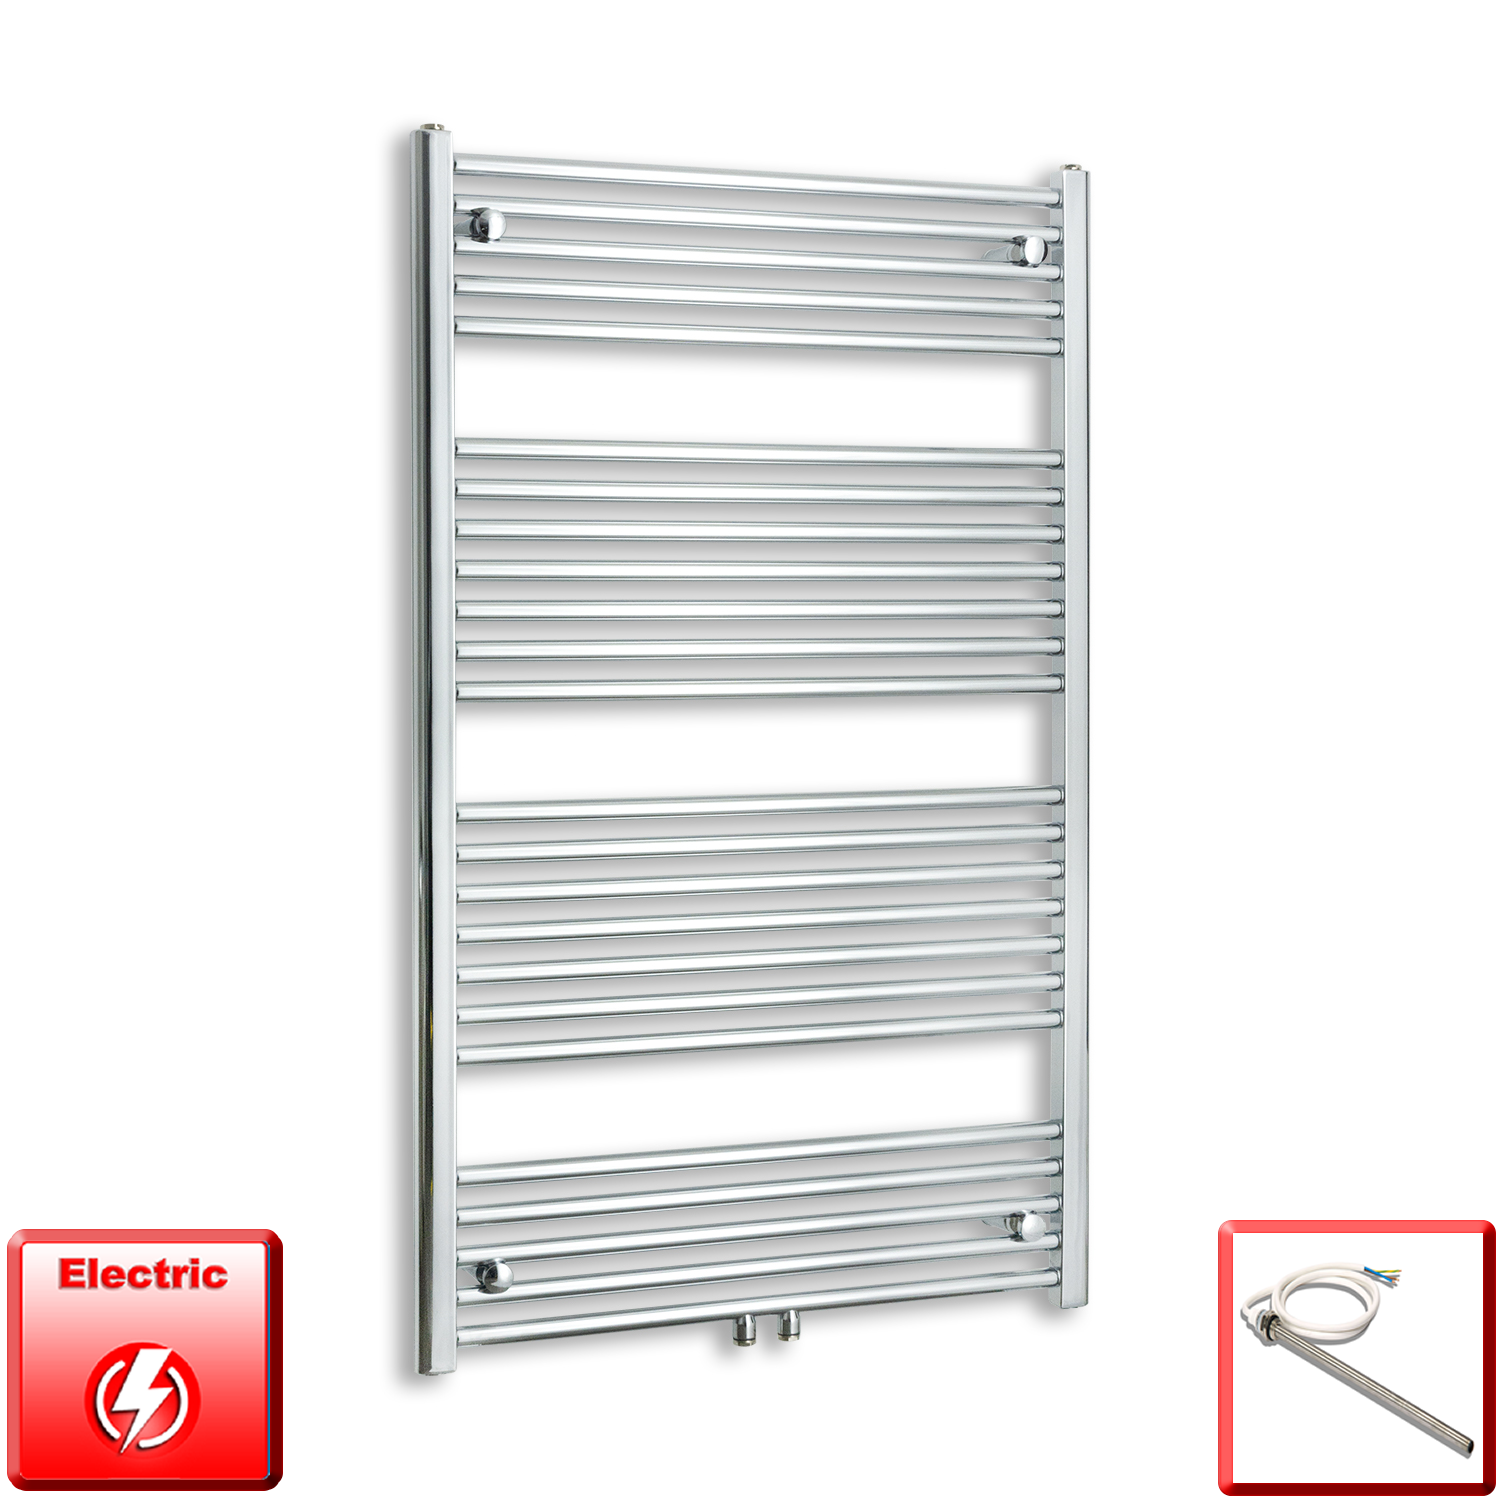 750mm Wide 1200mm High Pre-Filled Chrome Electric Towel Rail Radiator With Single Heat Element